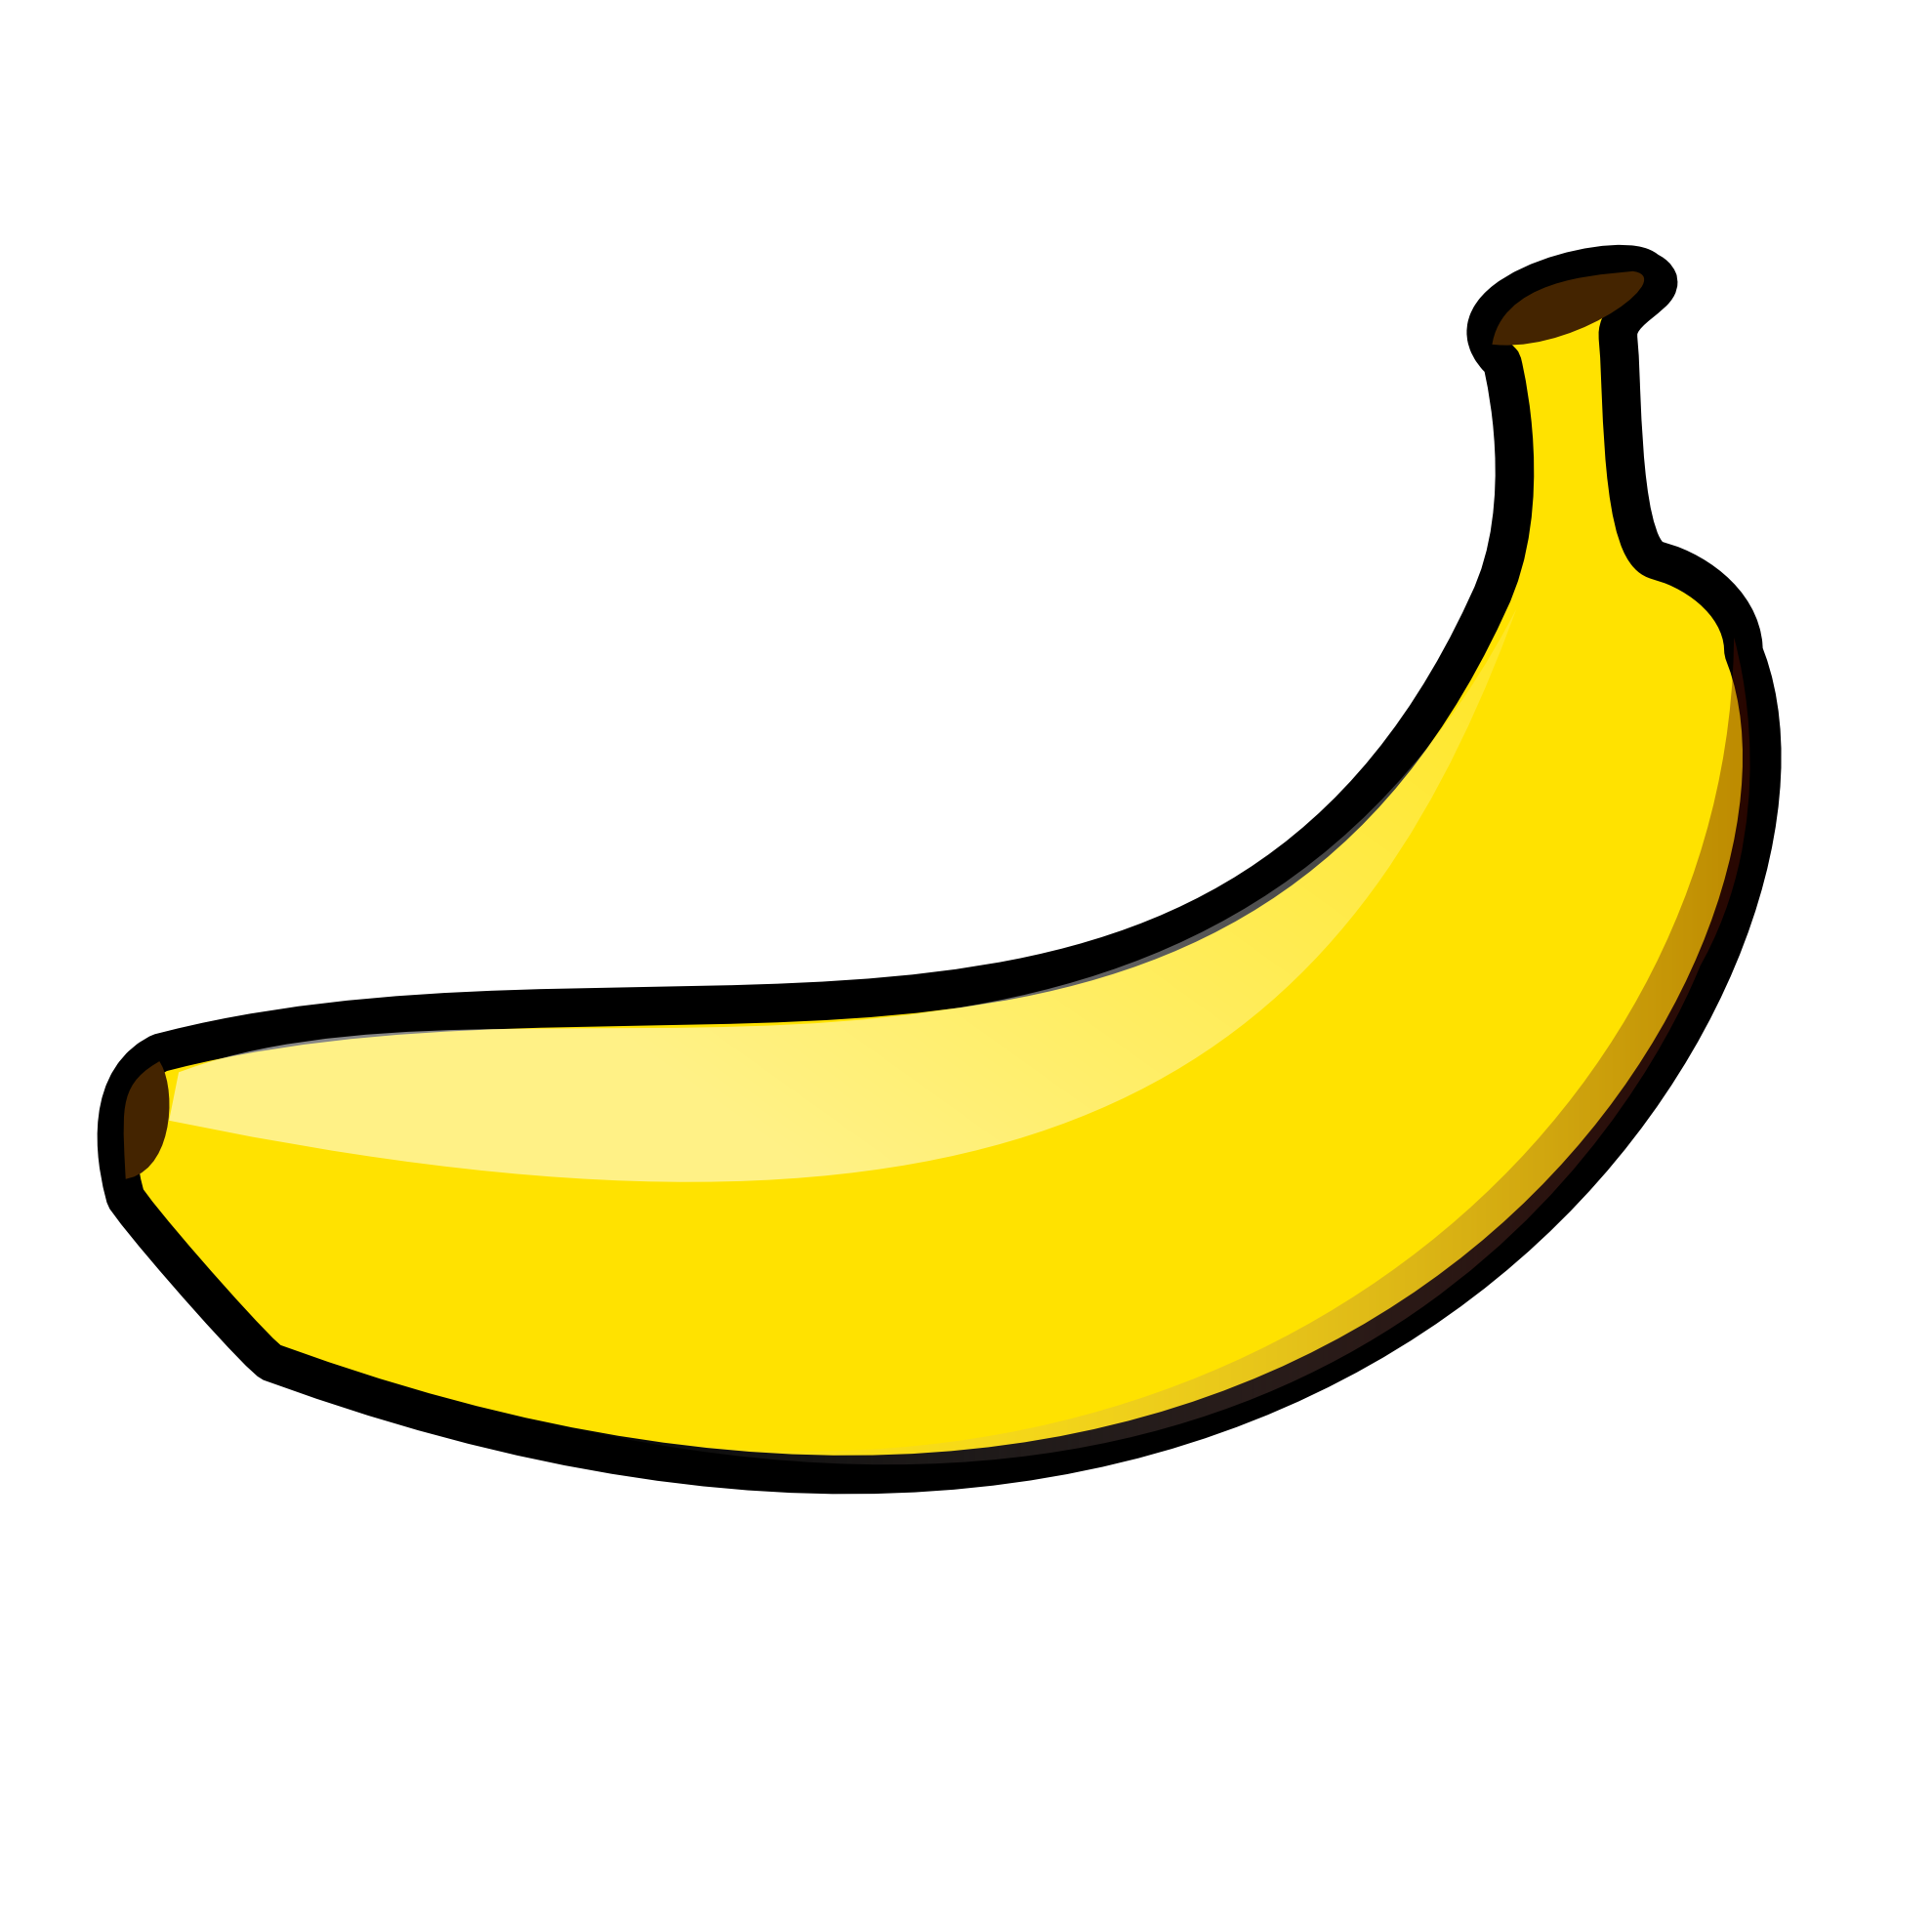 Banana clipart #2, Download drawings